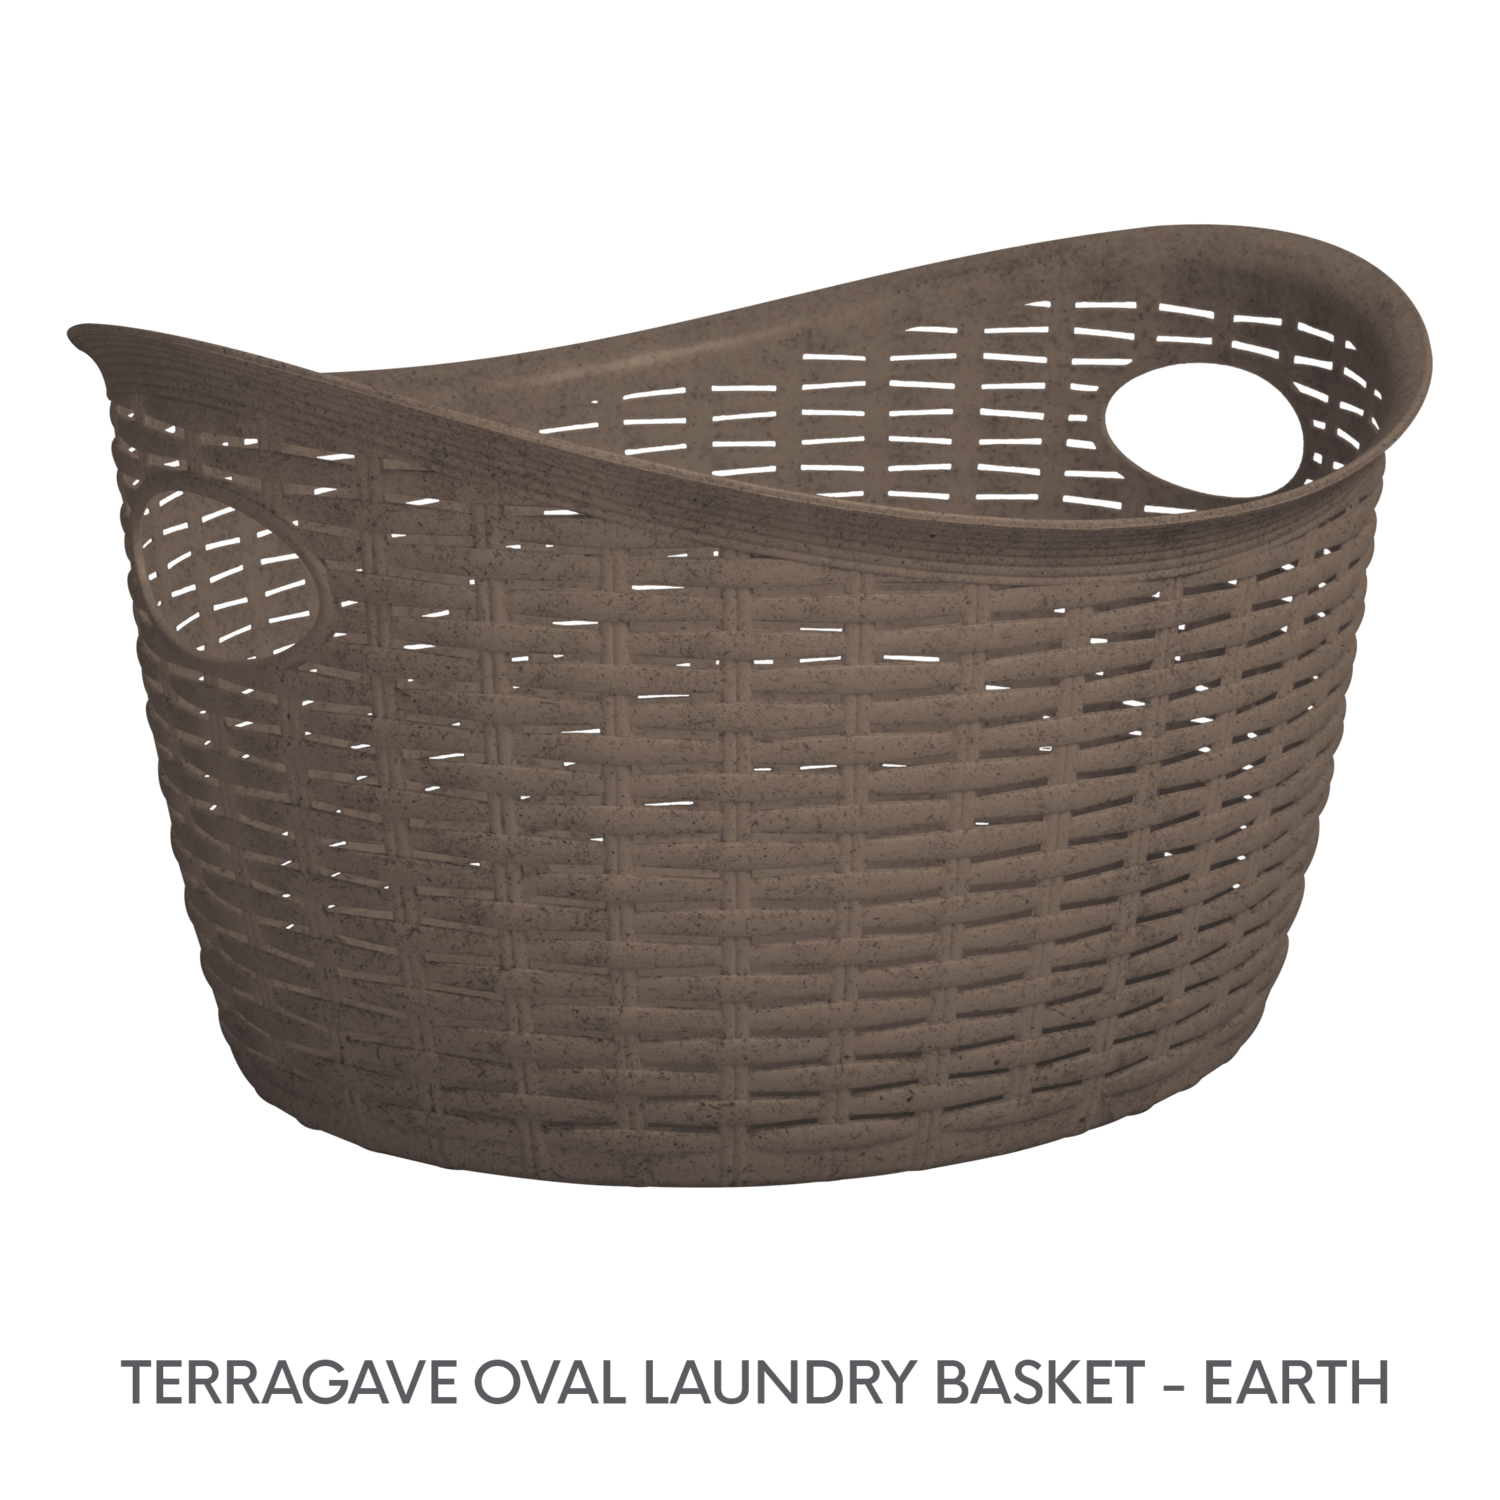 4 TERRAGAVE OVAL LAUNDRY BASKET - EARTH.png